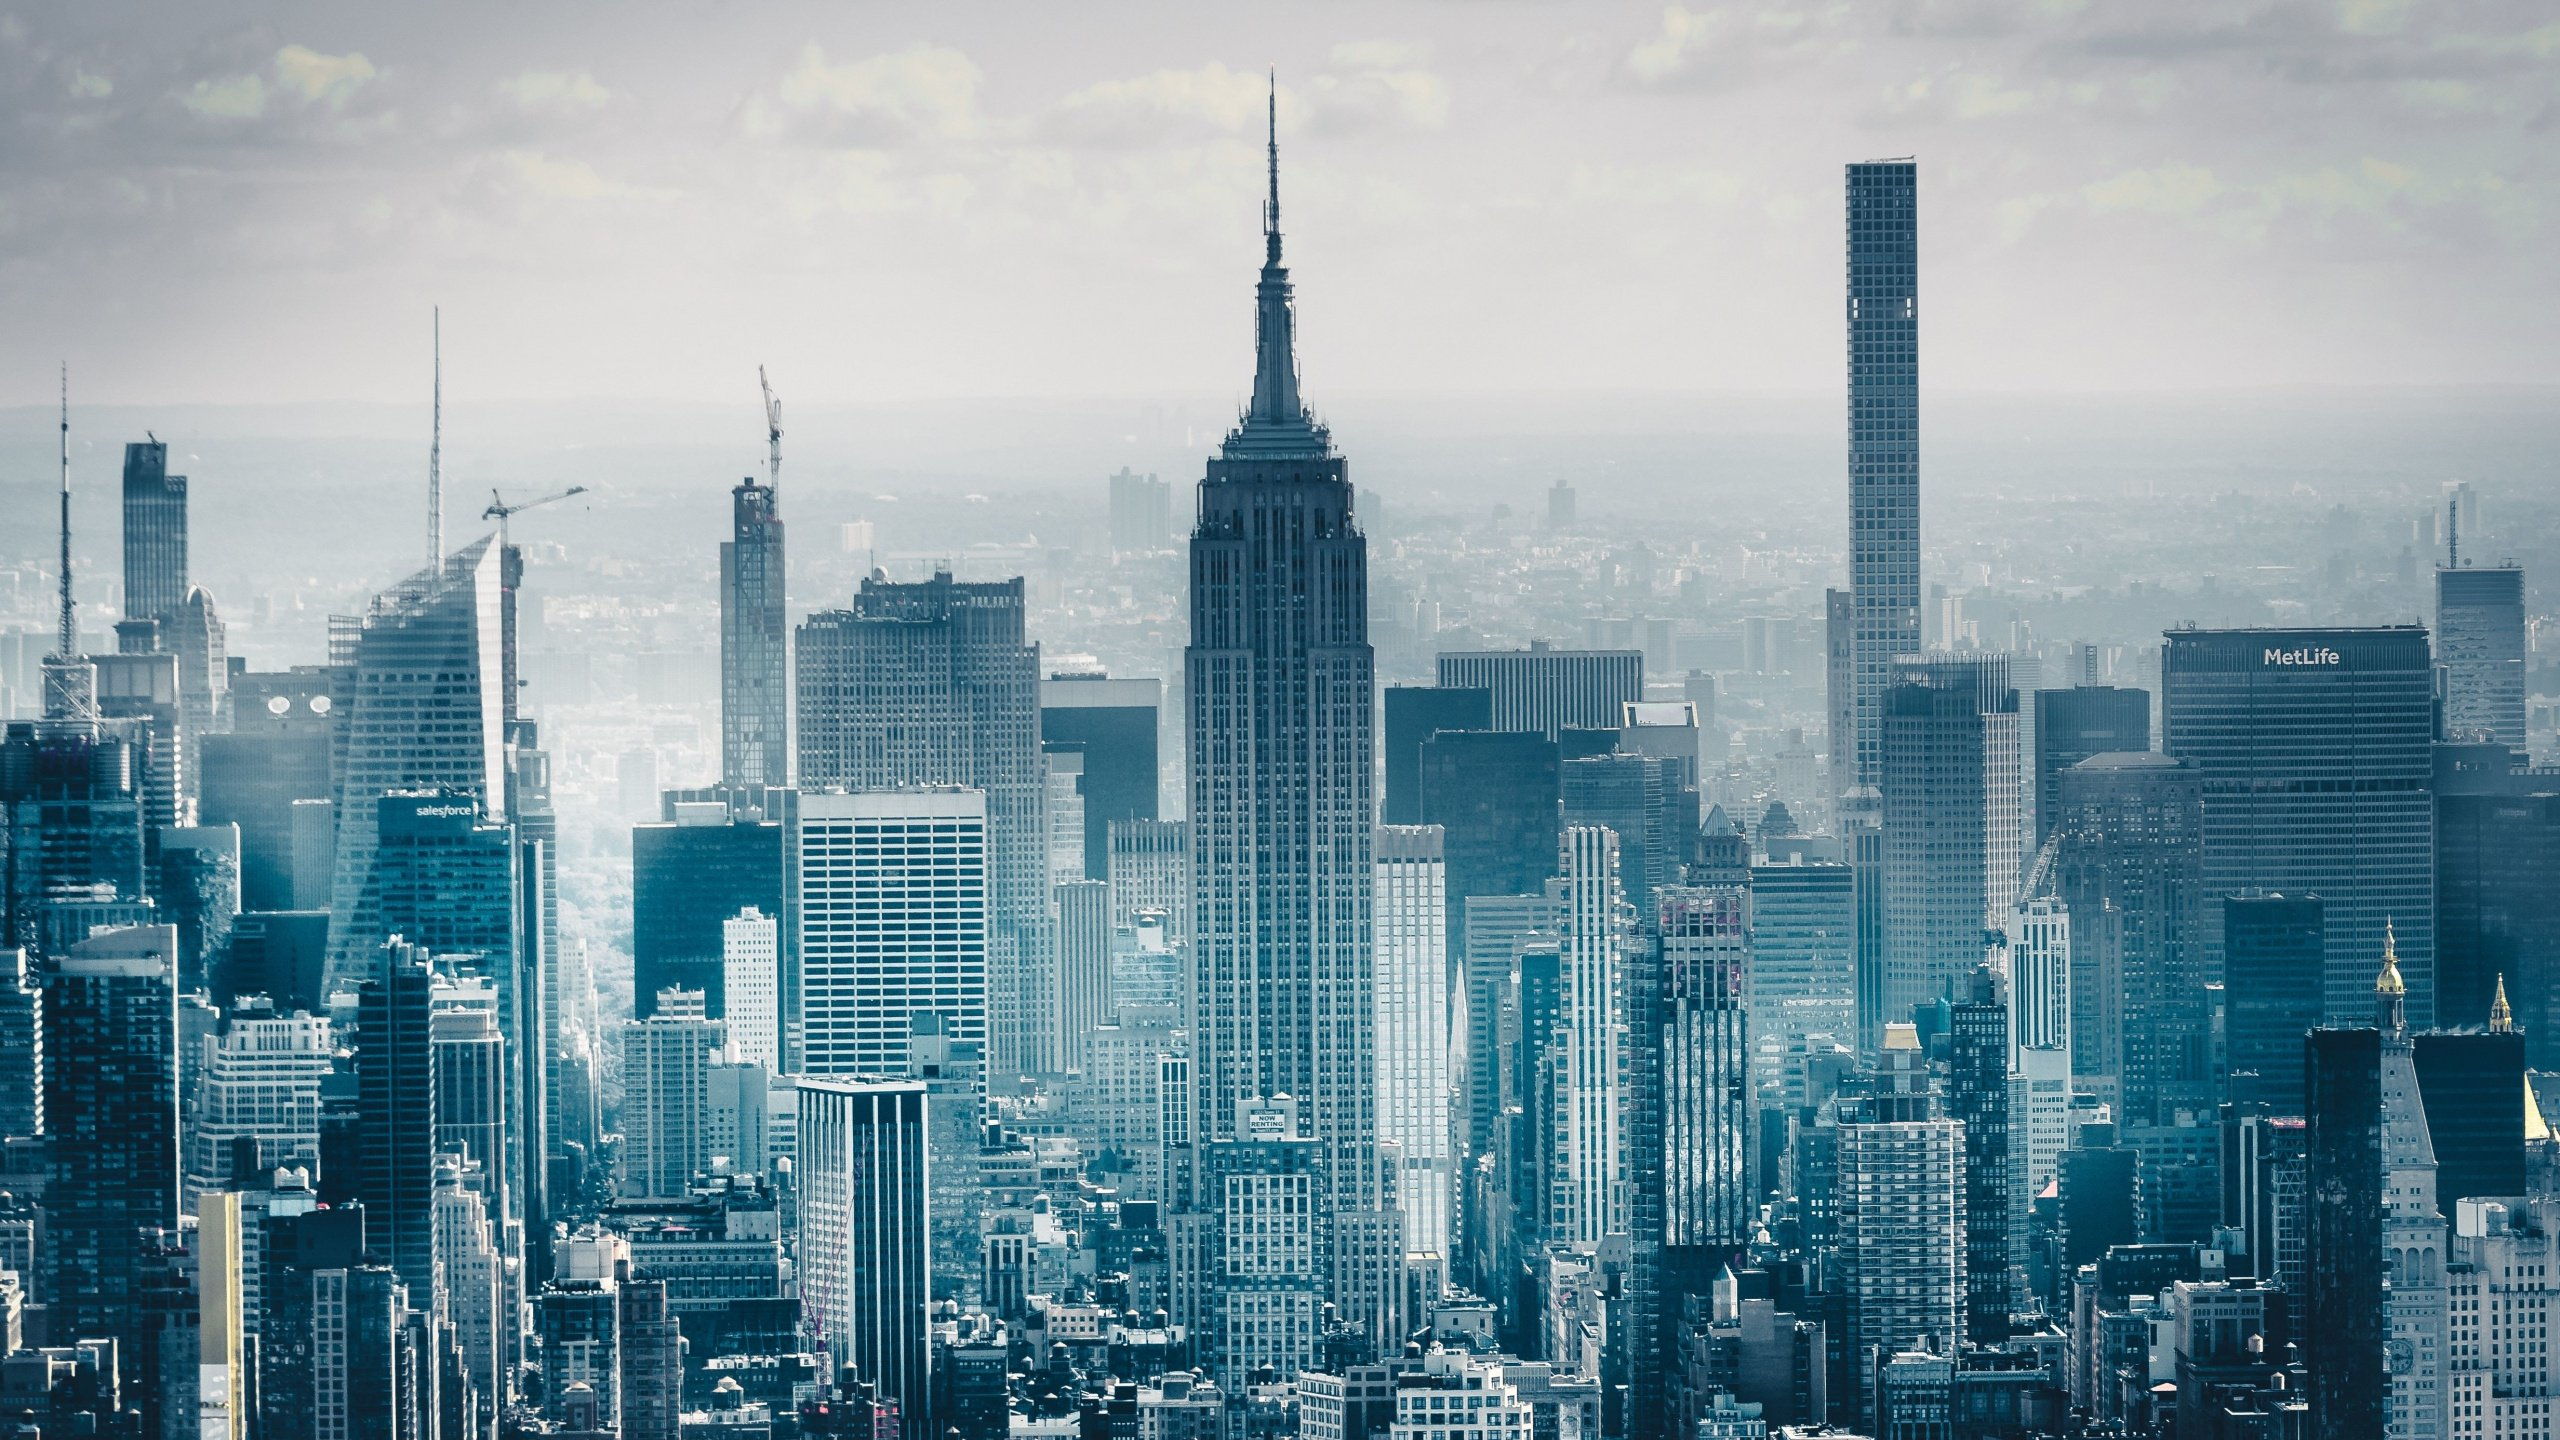 Cityscape wallpapers 4k for your phone and desktop screen - New york city wallpaper hd pictures ...